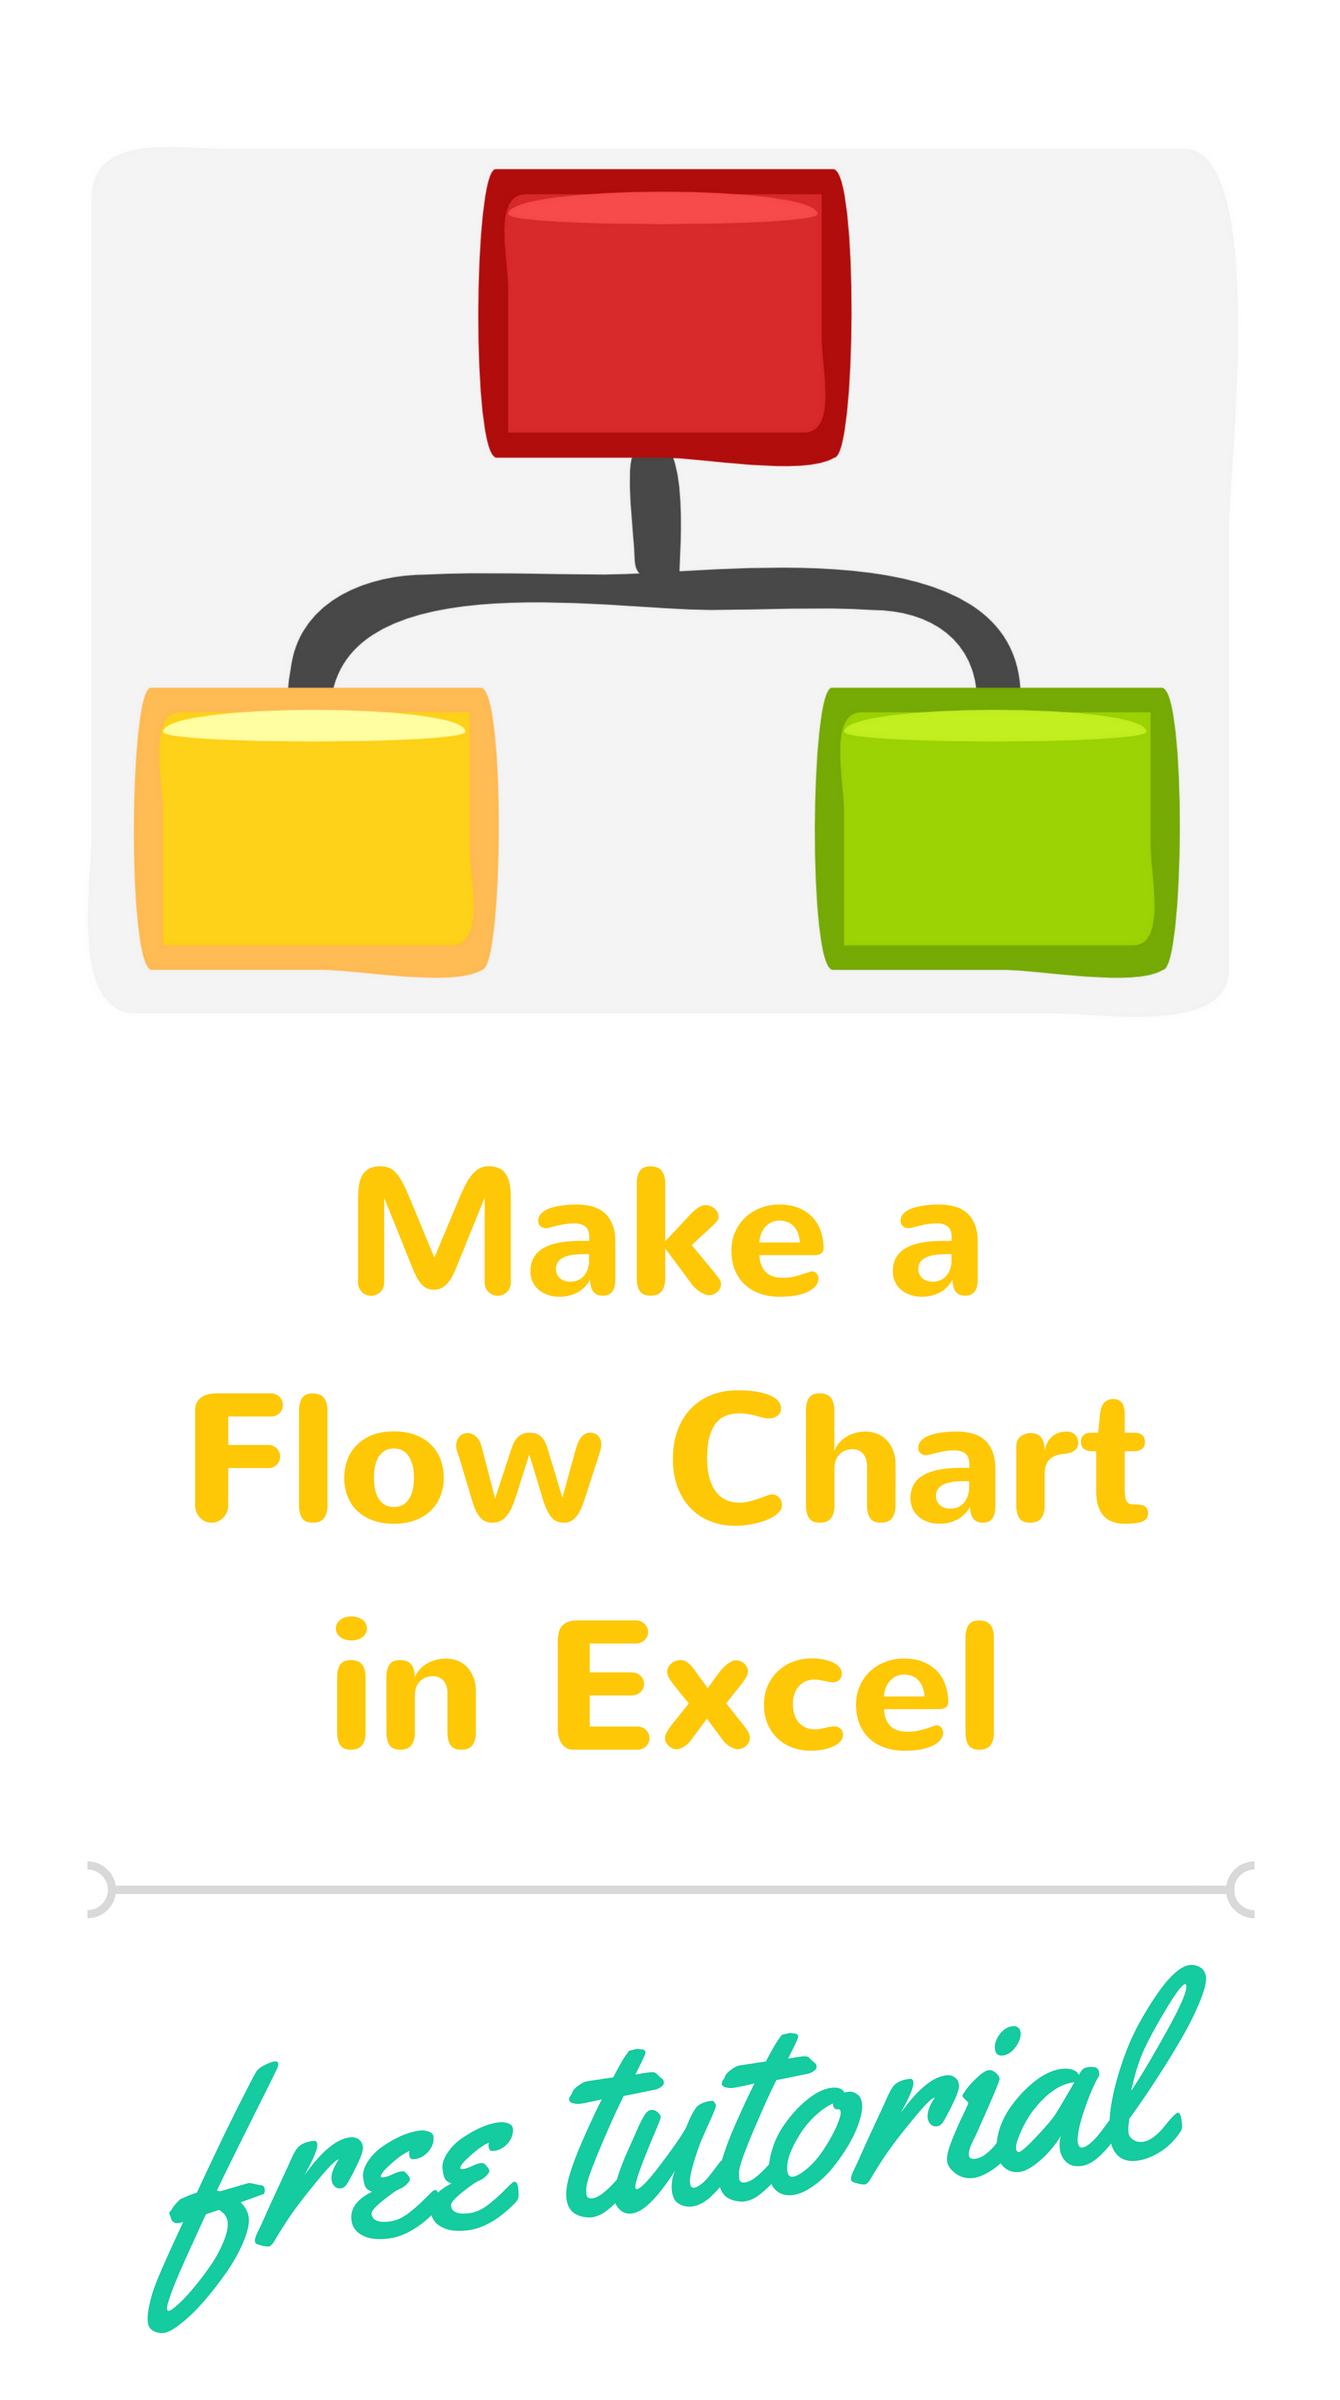 Excel Tutorial On How To Make A Flow Chart In Excel  We U0026 39 Ll